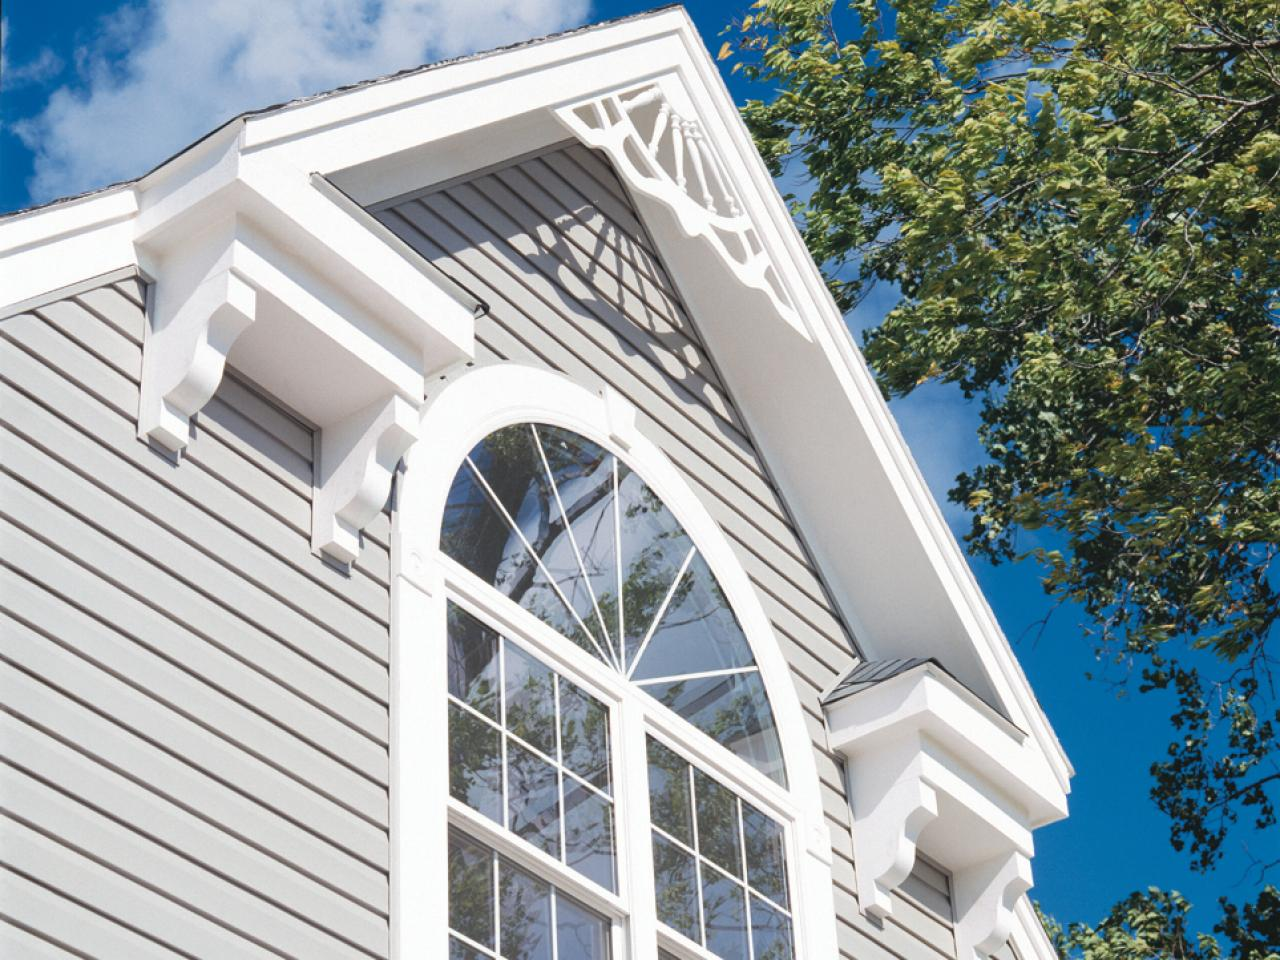 Exterior trim molding and columns hgtv - What type of wood for exterior trim ...